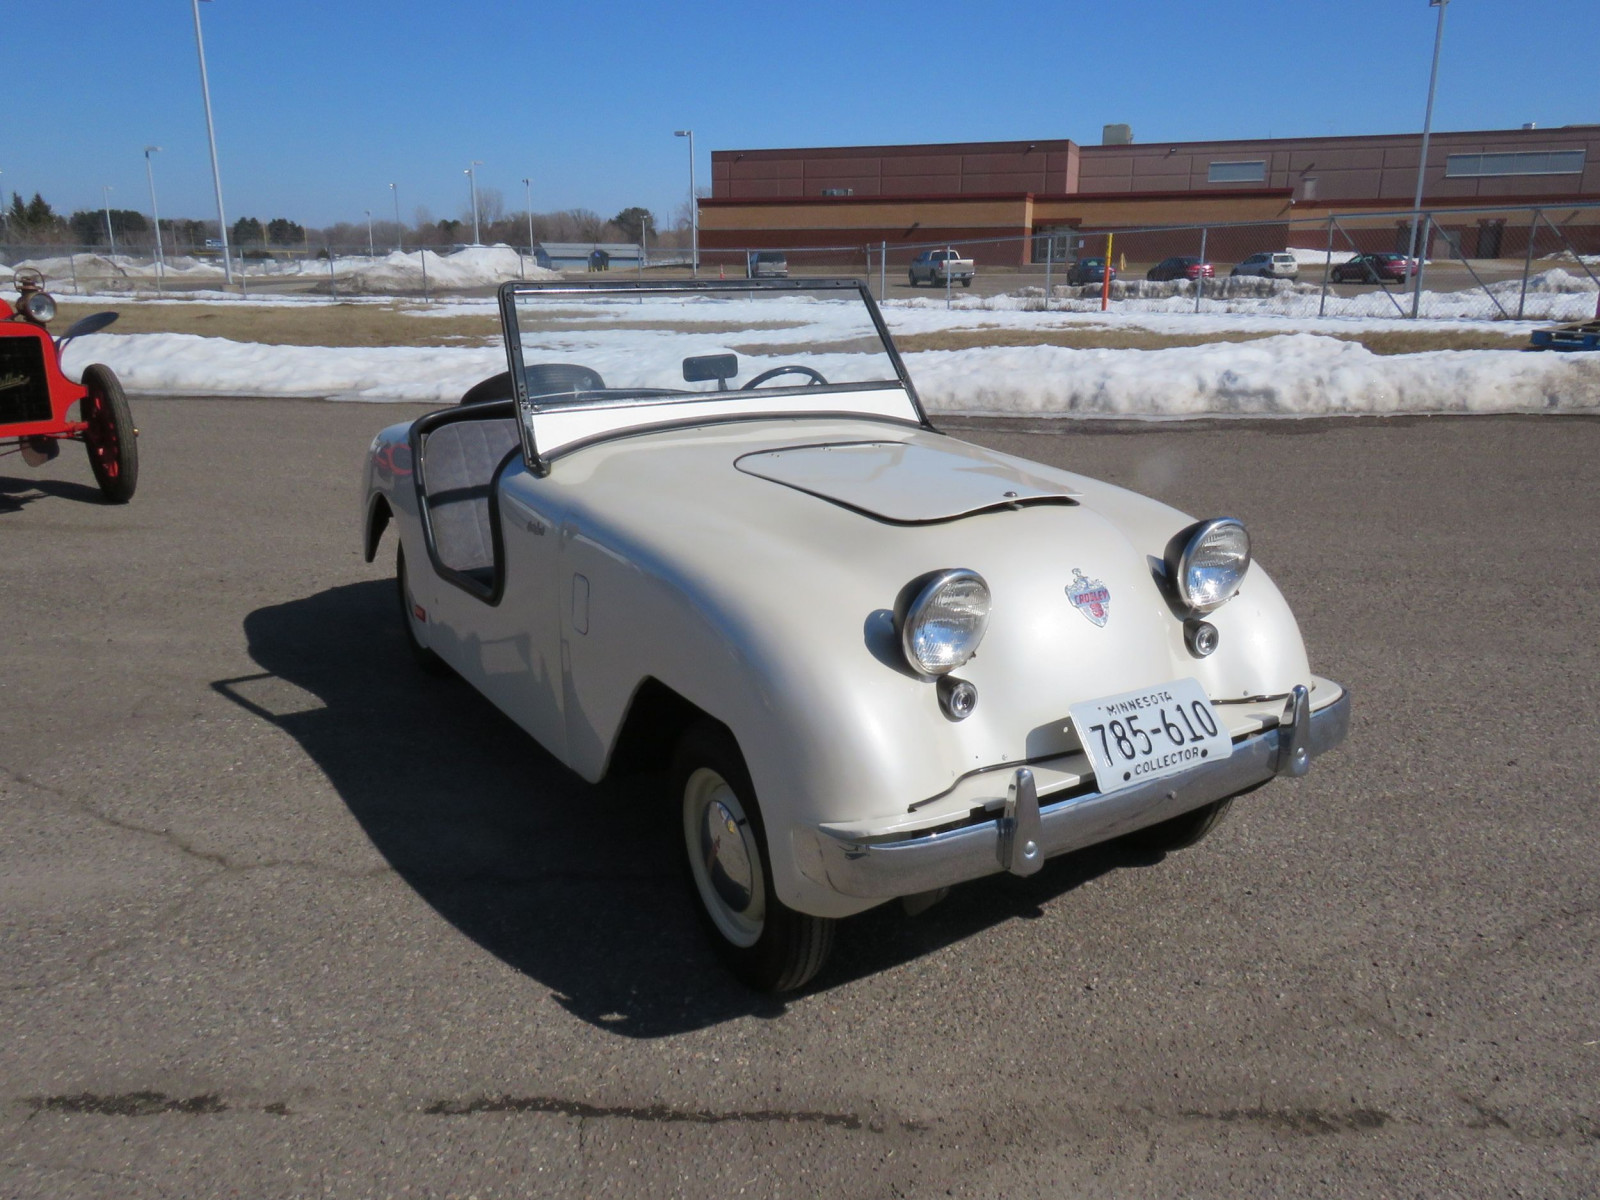 1950 Crosley Hot Shot Roadster - Image 1